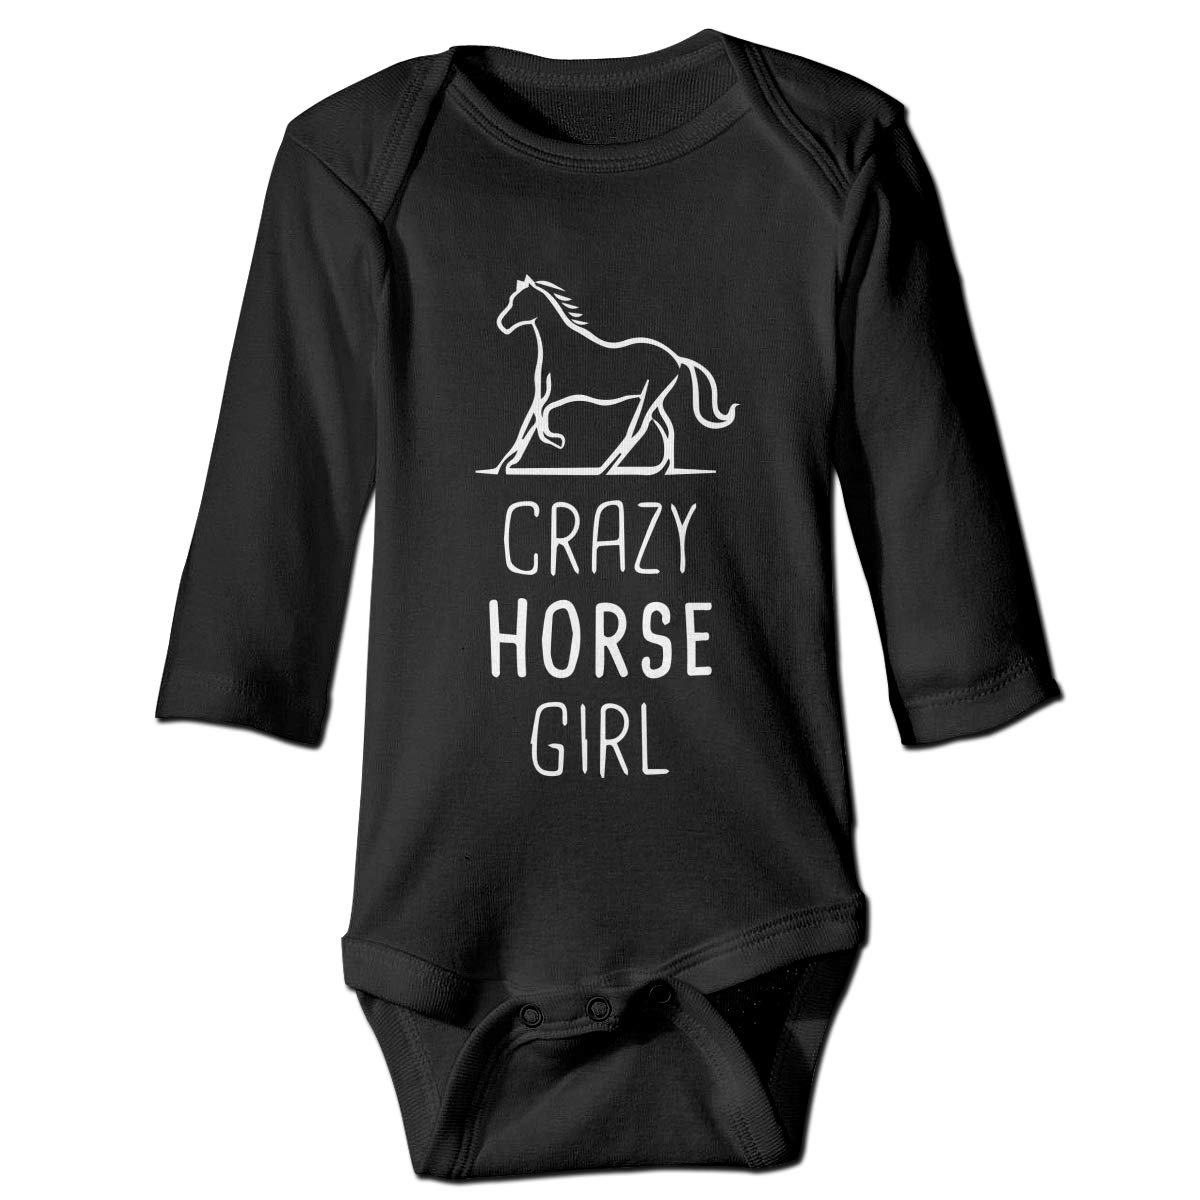 A14UBP Newborn Baby Boys Girls Romper Bodysuit Infant Crazy Horse Girl Long Sleeve Funny Baby Clothes